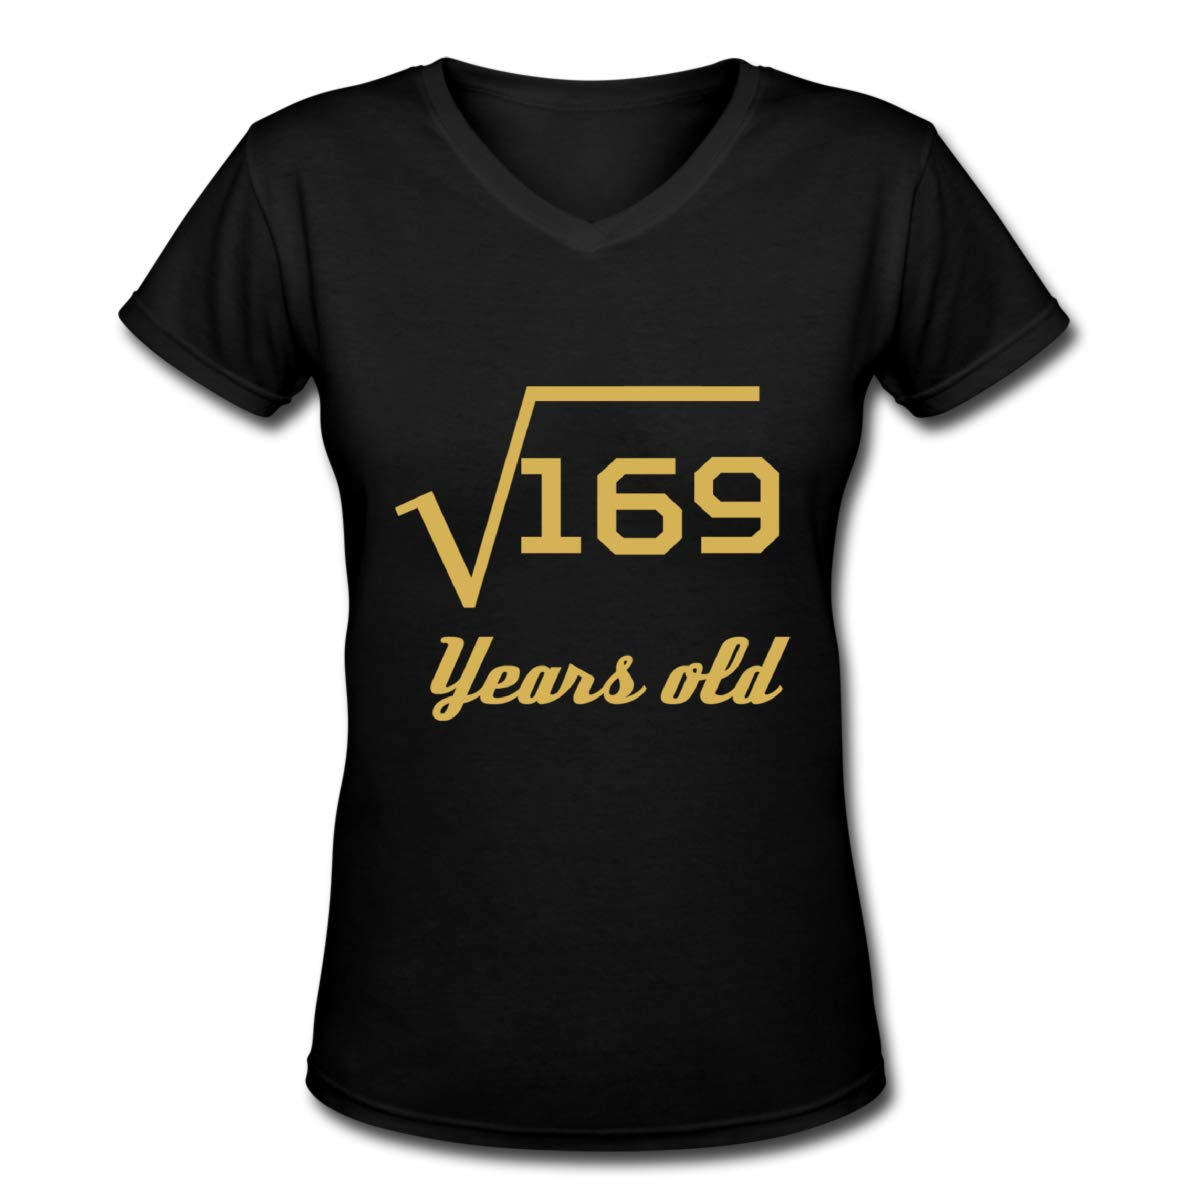 Jusxout Square Root of 169 13th Birthday 13 Years Old V-Neck Short Sleeve T-Shirts